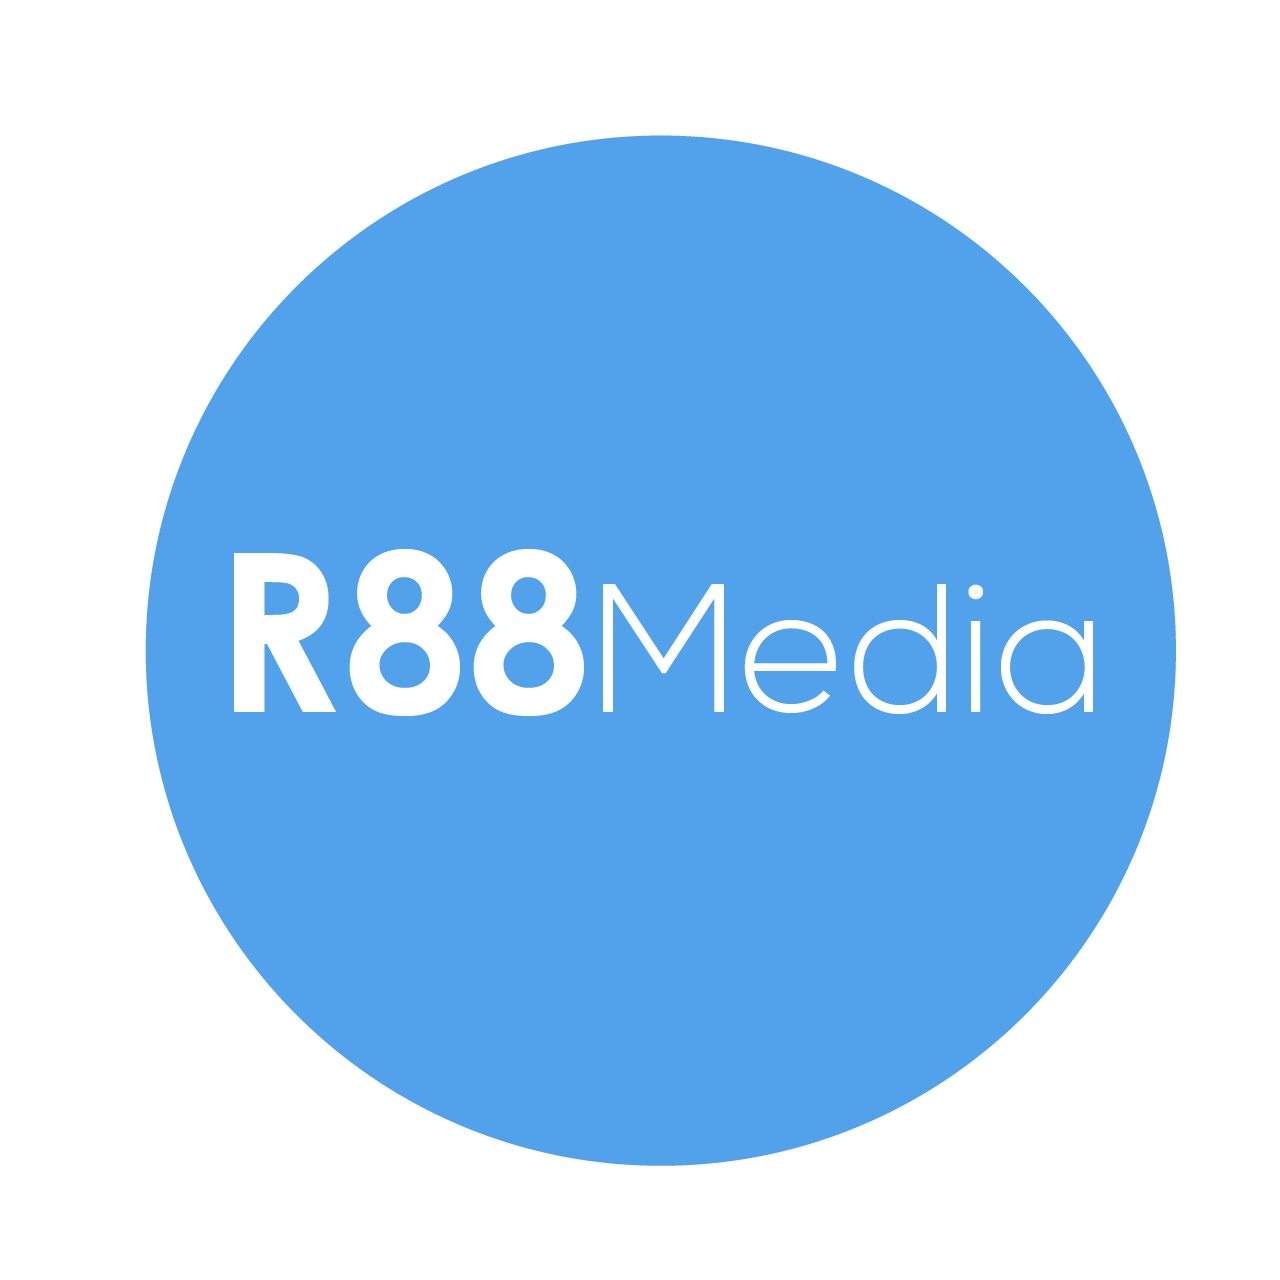 R88Media | Website Design | Website Designers | Google PPC & SEO Services